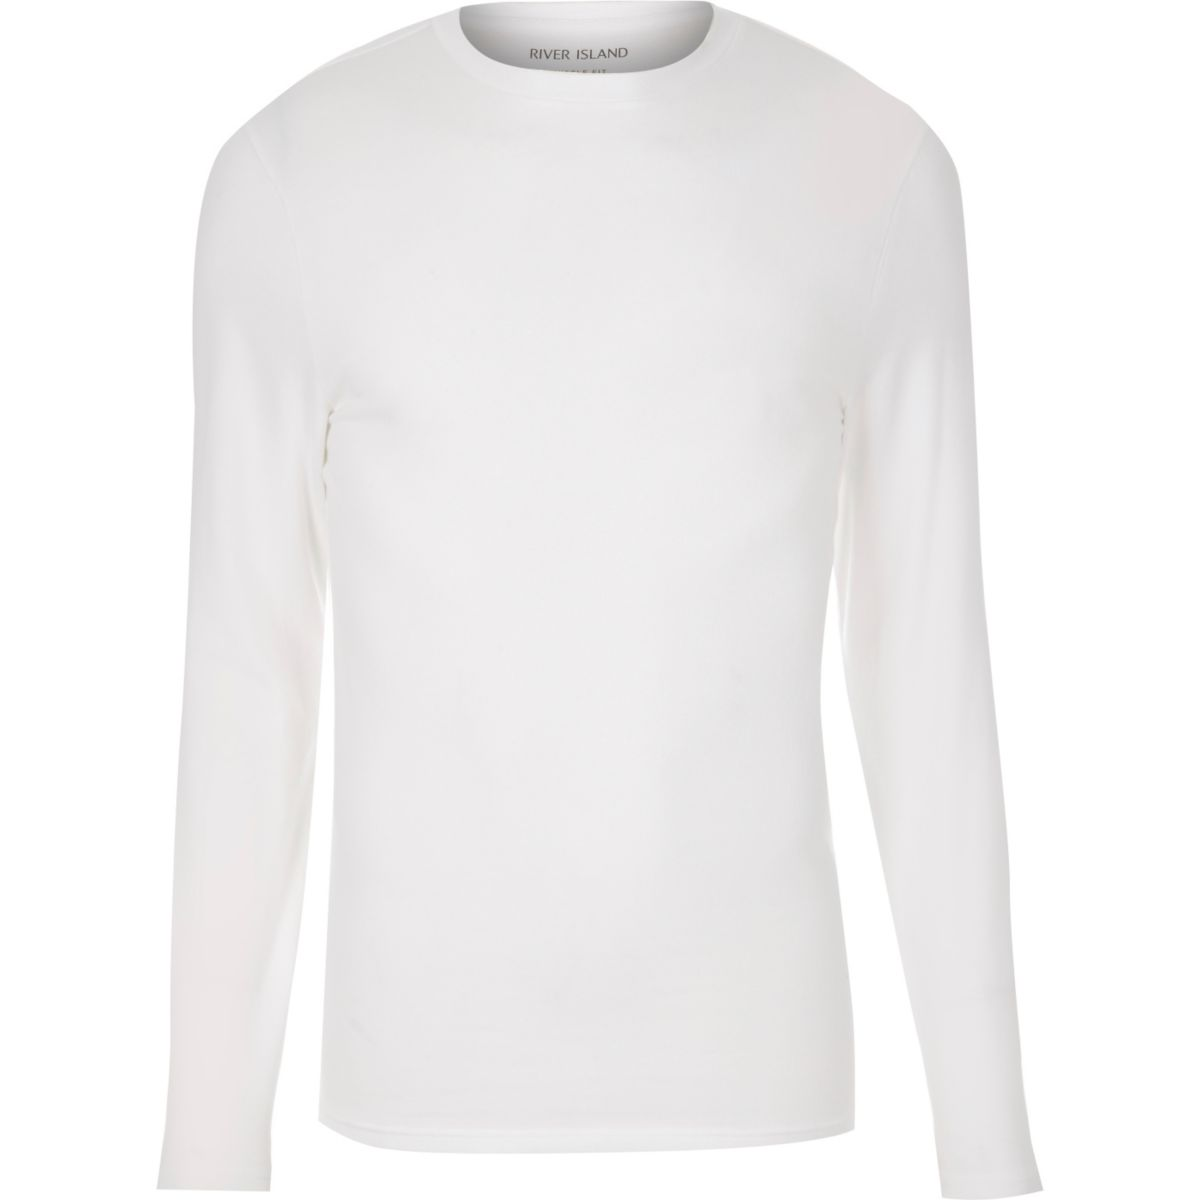 White muscle fit long sleeve T-shirt - T-Shirts & Vests ...